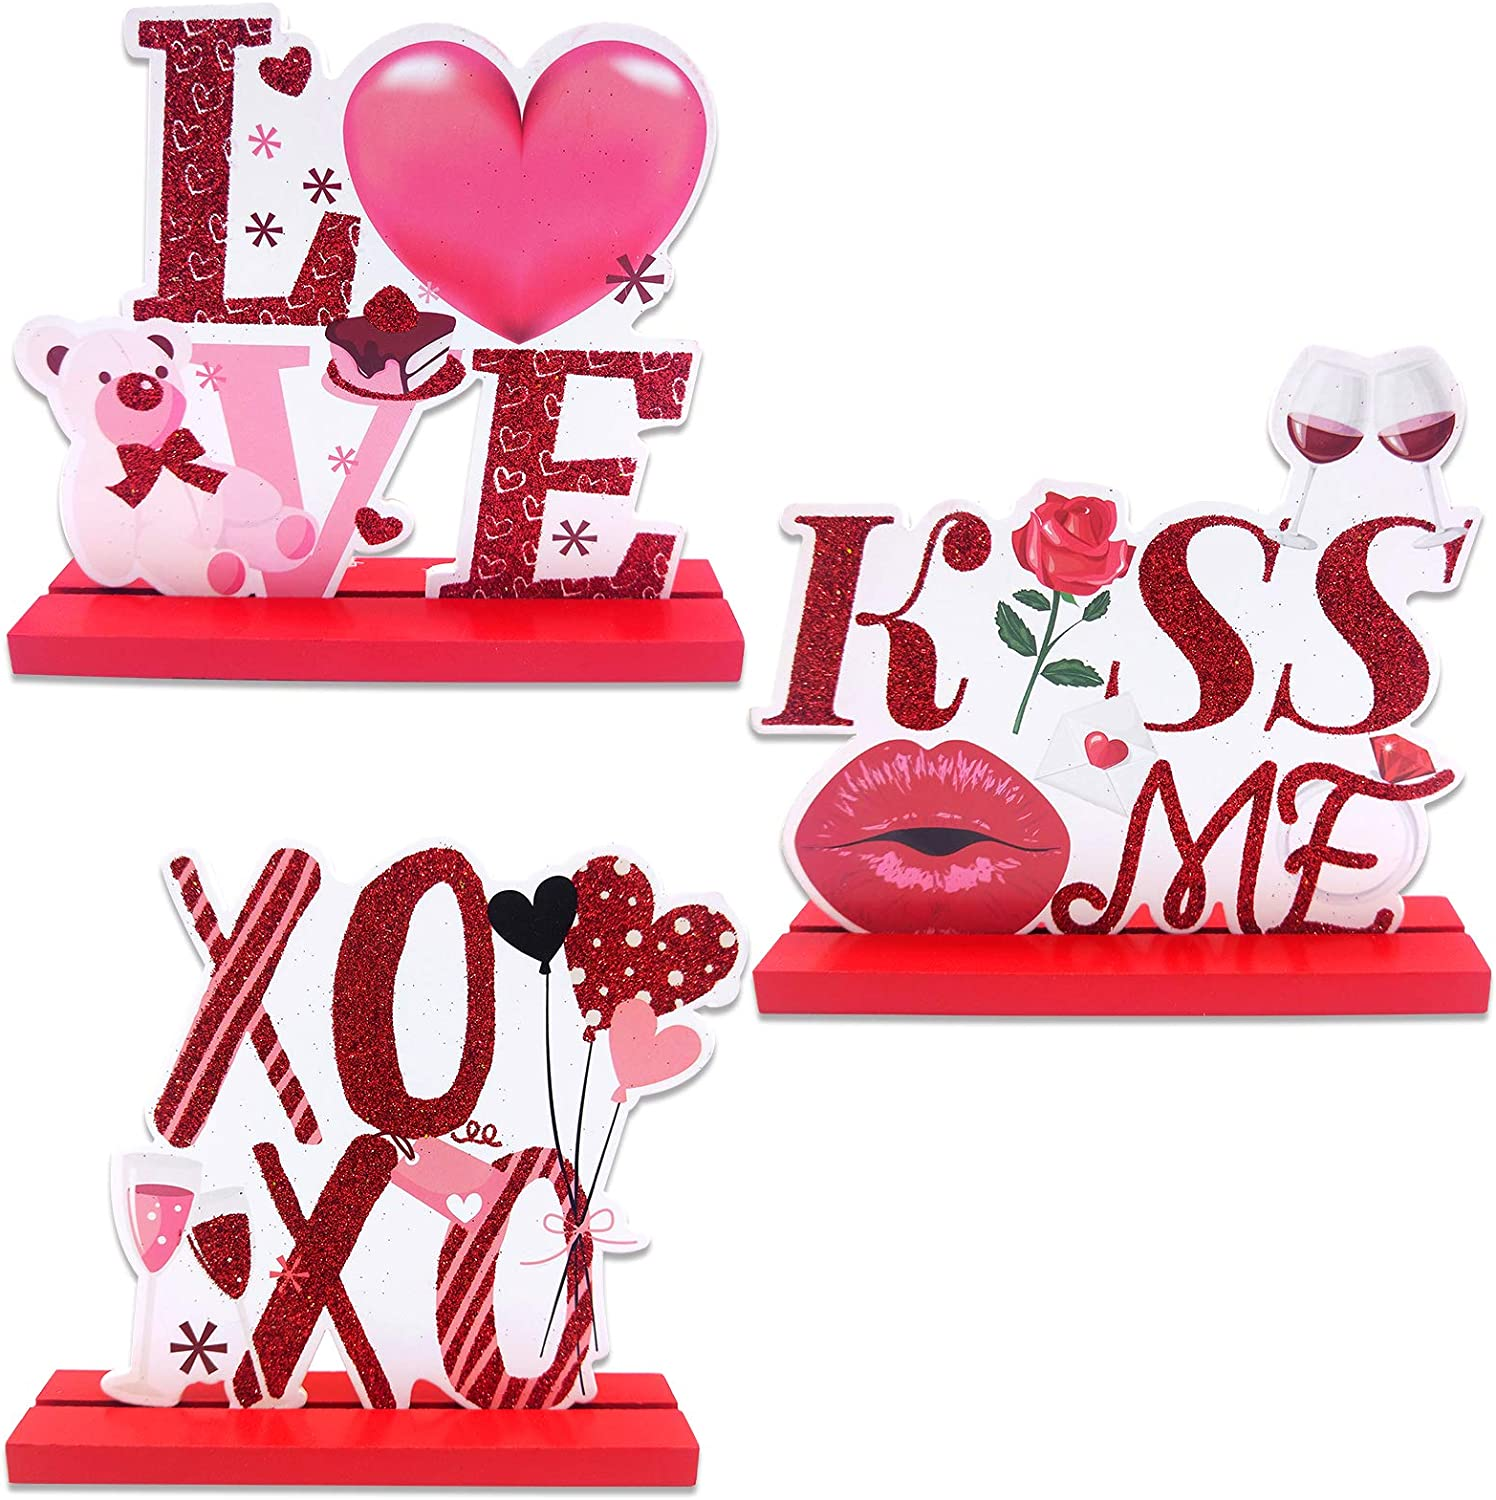 changsha 3 Pack Valentines Day Wooden Table Top Decorations, Red Love Kiss Me XOXO Wooden Signs Table Centerpieces Decoration for Valentine Dinner Party Table Home Decor